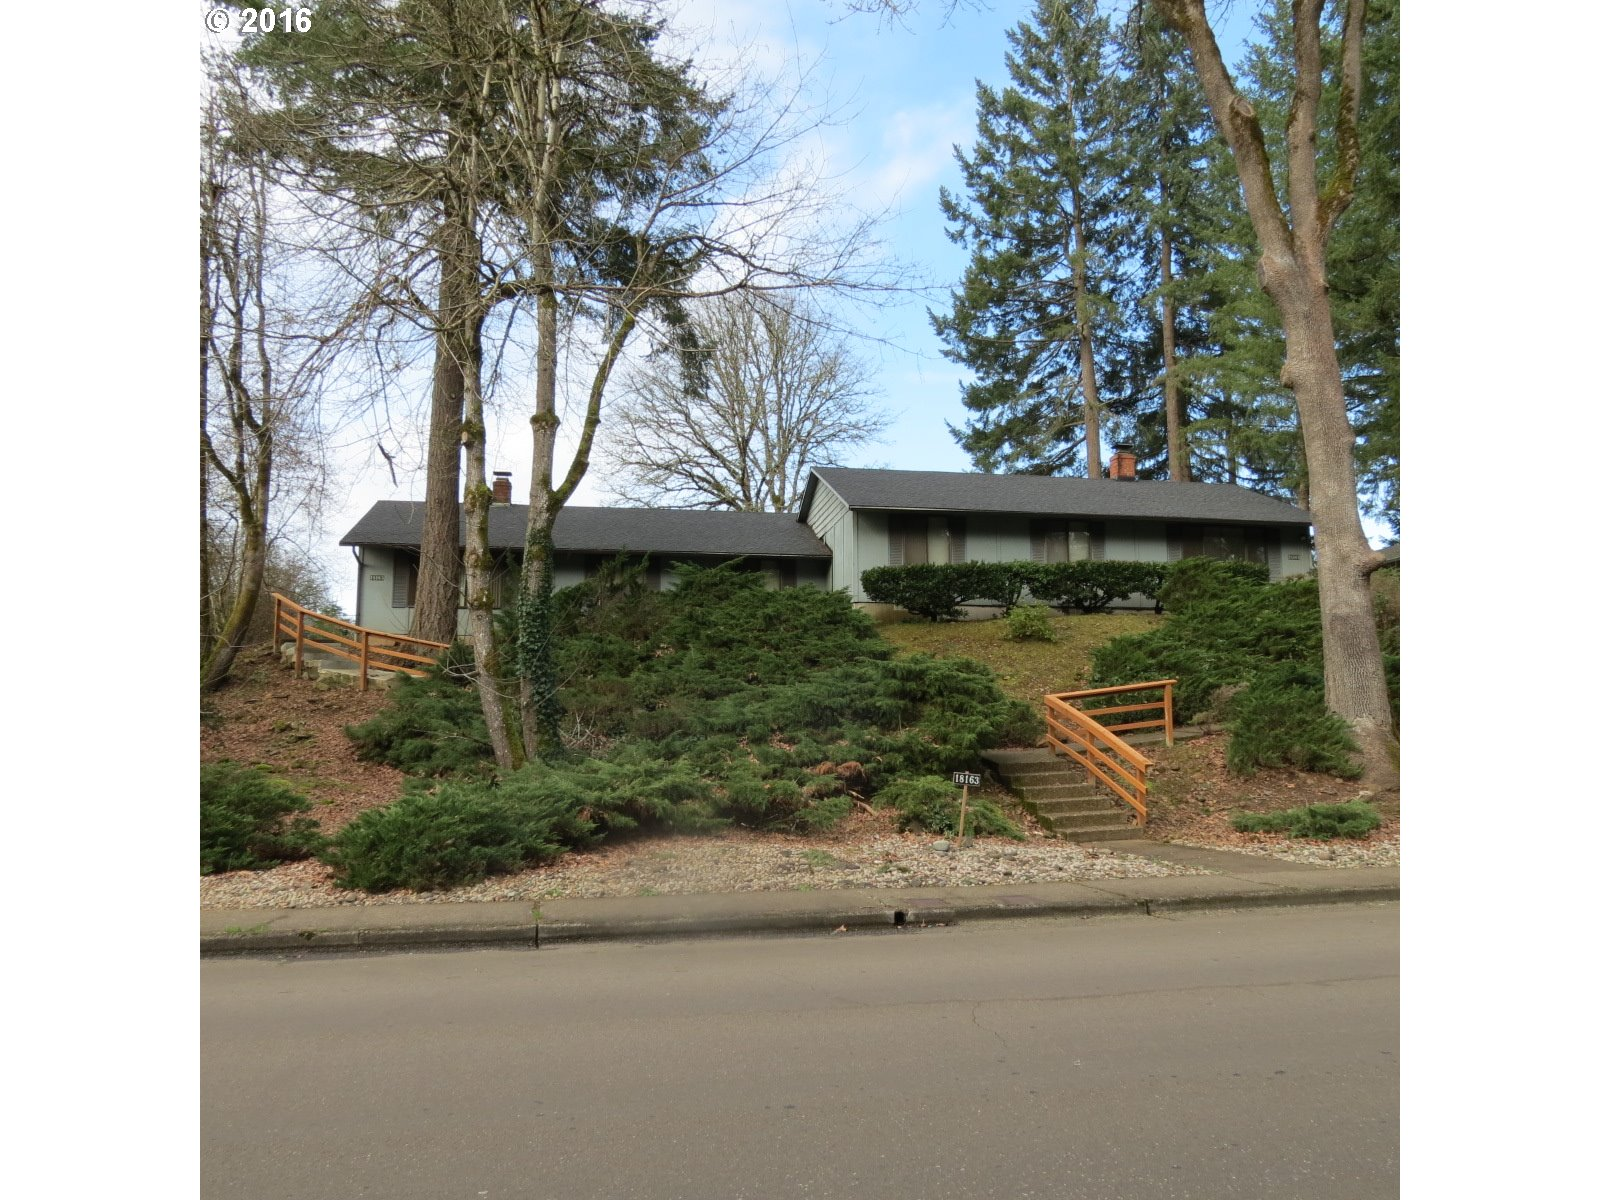 Photo for 18161 DEERBRUSH AVE, Lake Oswego, OR 97035 (MLS # 16450773)